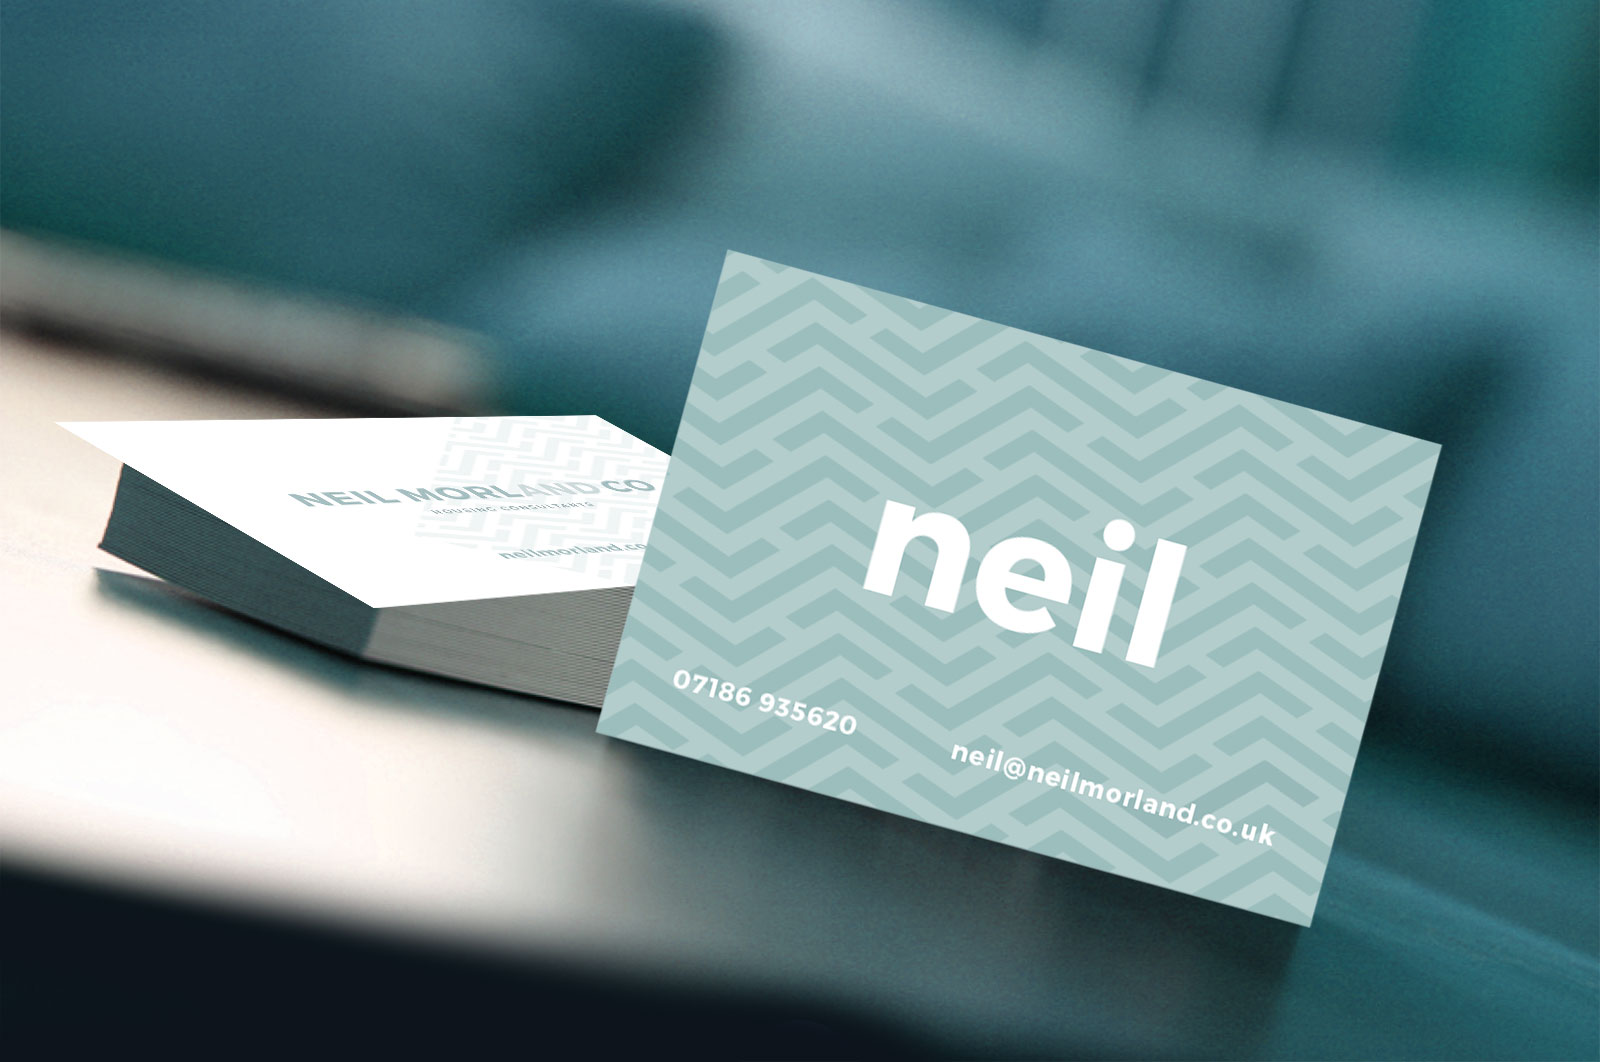 Neil Morland & Co Business Card